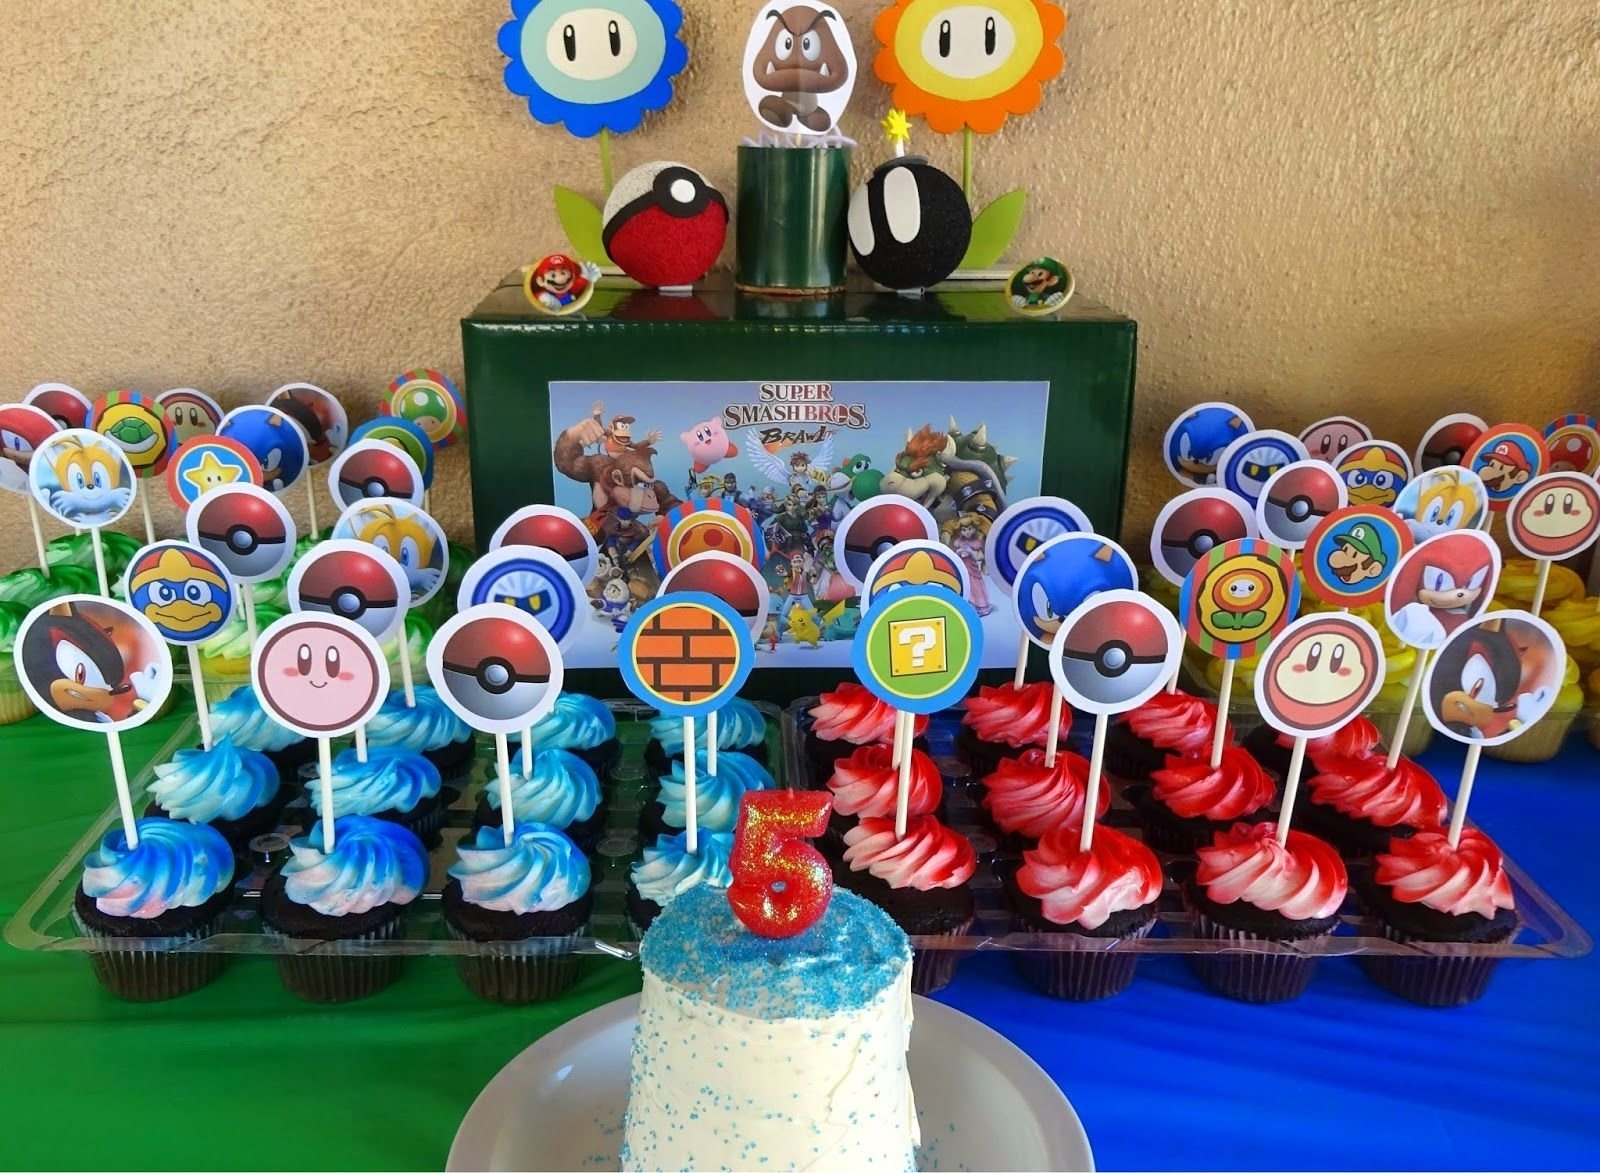 10 Fabulous Super Mario Brothers Birthday Party Ideas super smash bros birthday party my creations pinterest super 2020